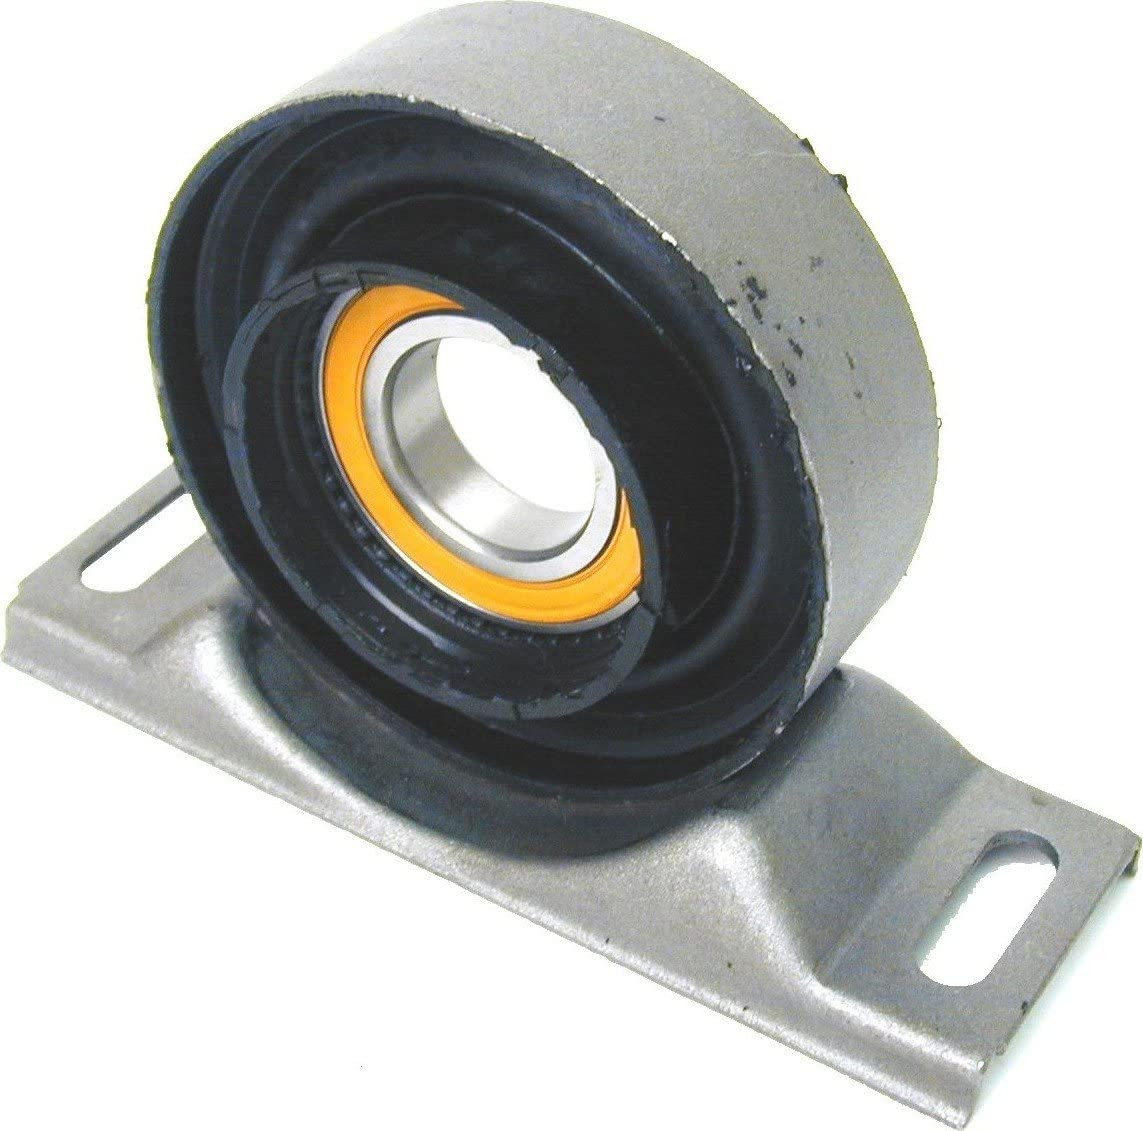 Overseas parallel import regular item URO Parts 26121226723 Driveshaft Support Bearing w Lowest price challenge INA